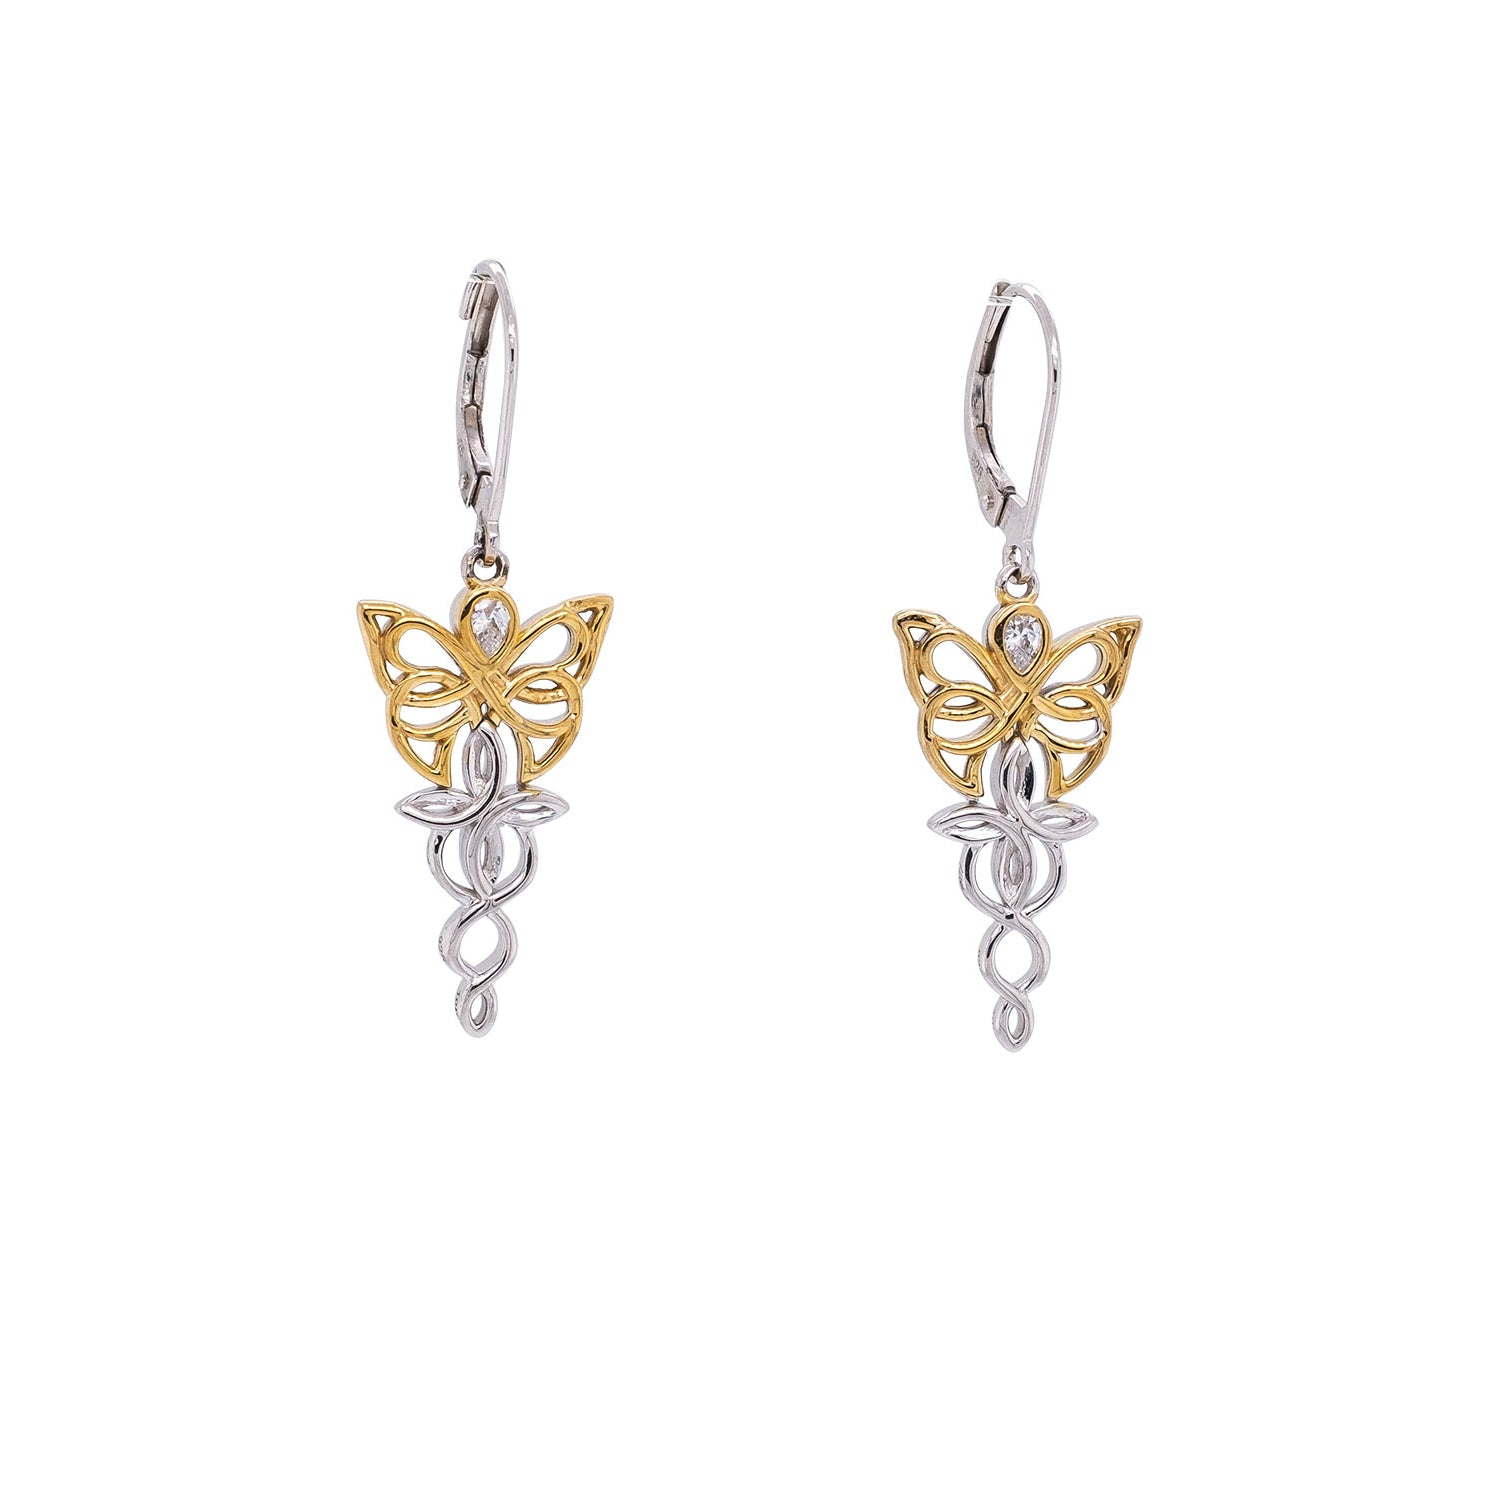 Earrings Rhodium 10k Yellow CZ Butterfly Leverback Earrings from welch and company jewelers near syracuse ny